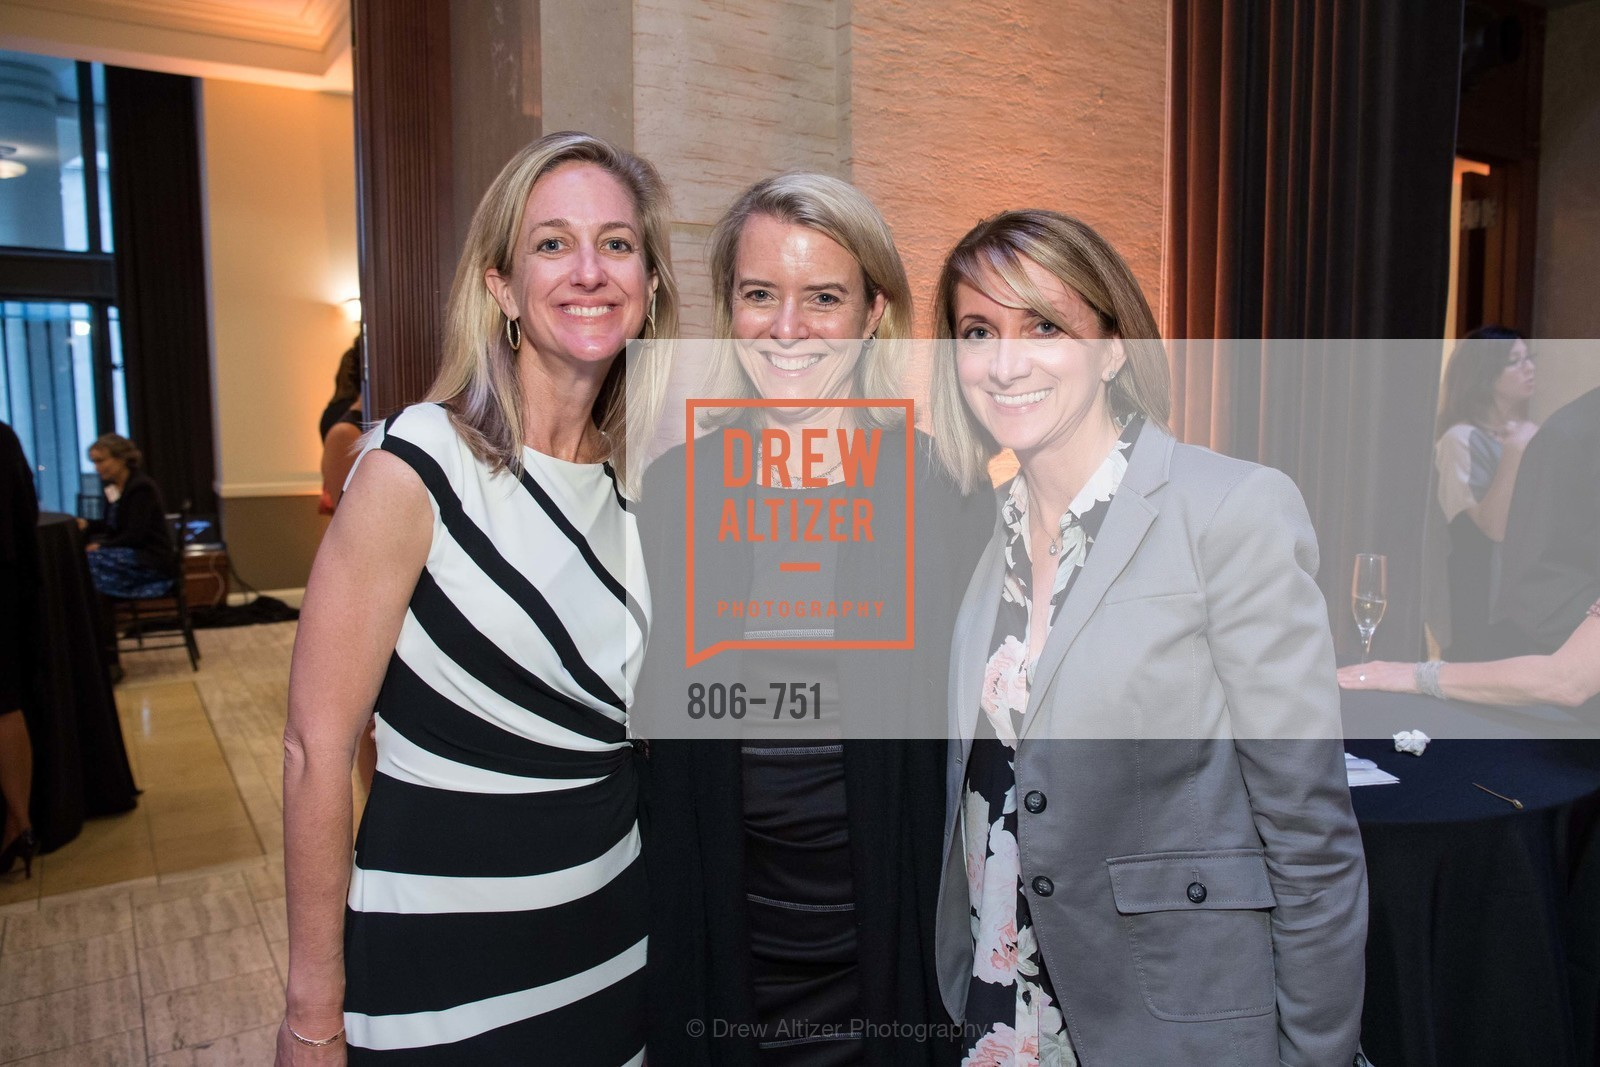 Paige Rogers, Blakely Atherton, Julene Montgomery, CENTER FOR ENVIRONMENTAL HEALTH (CEH) 2015 Gala, Bently Reserve, May 28th, 2015,Drew Altizer, Drew Altizer Photography, full-service agency, private events, San Francisco photographer, photographer california